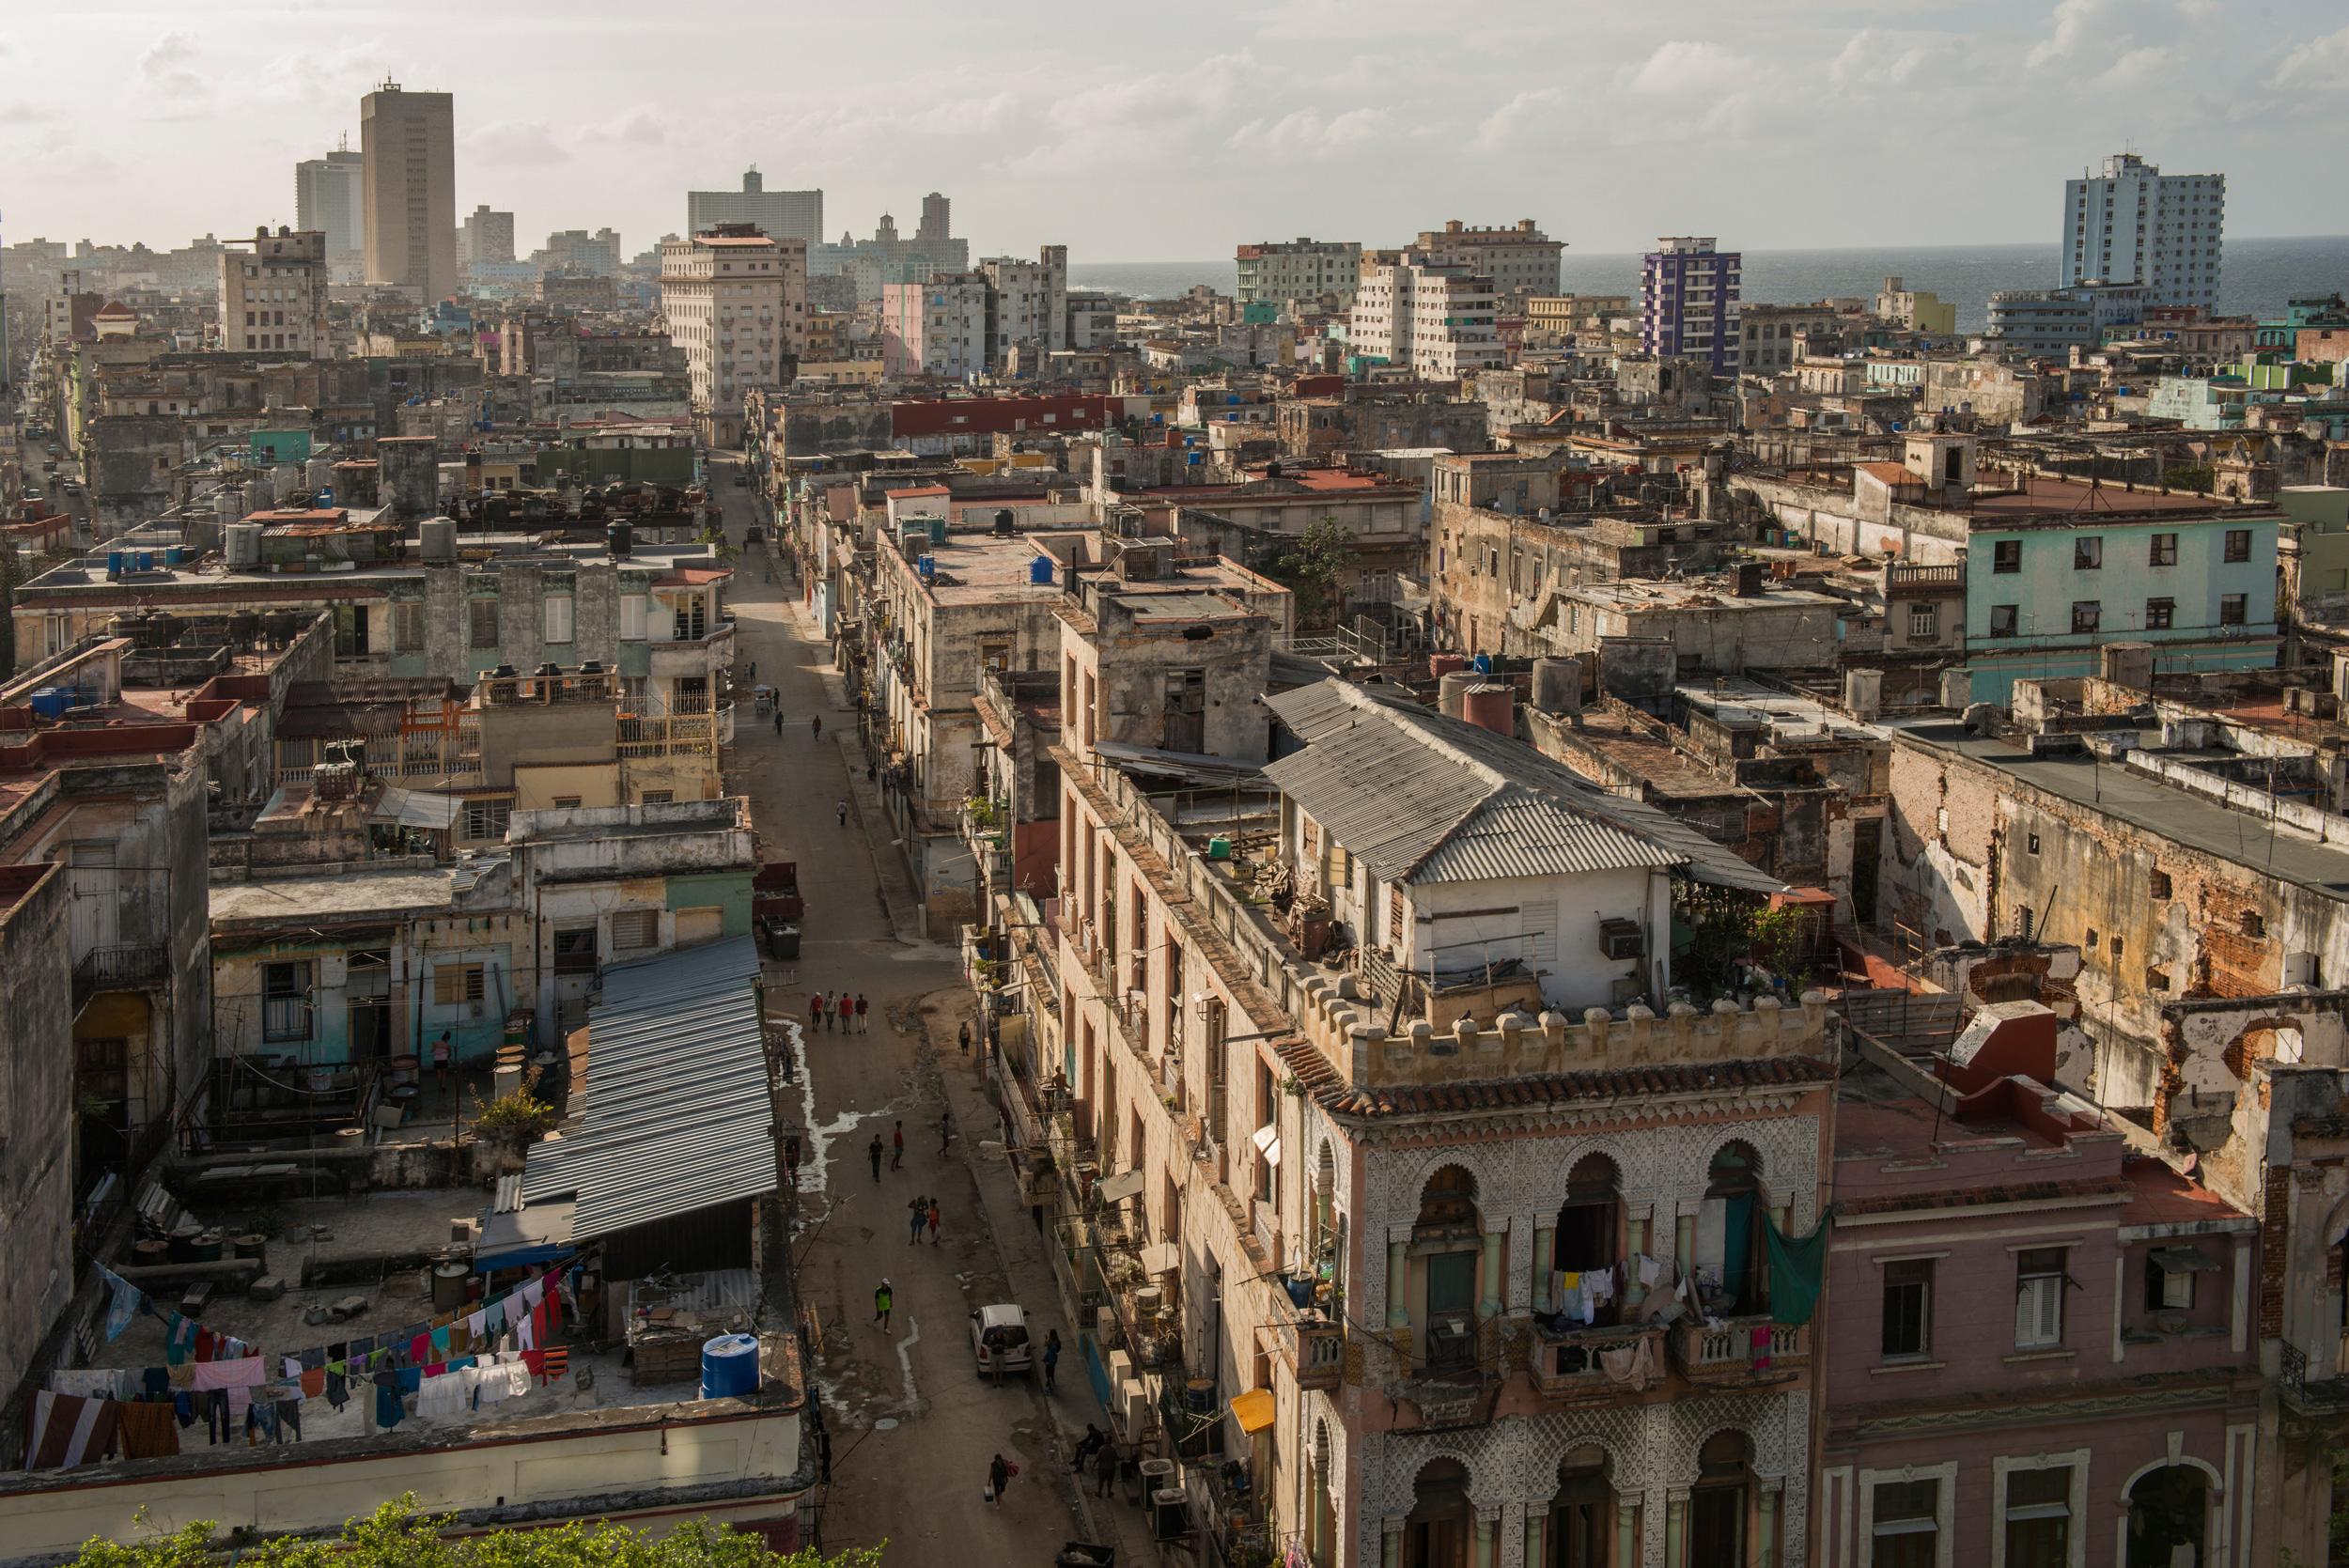 Havana some assembly required hakai magazine the inner city neighborhood of central havana has some of the citys worst living conditions with an estimated 40950 people per square kilometer stopboris Gallery